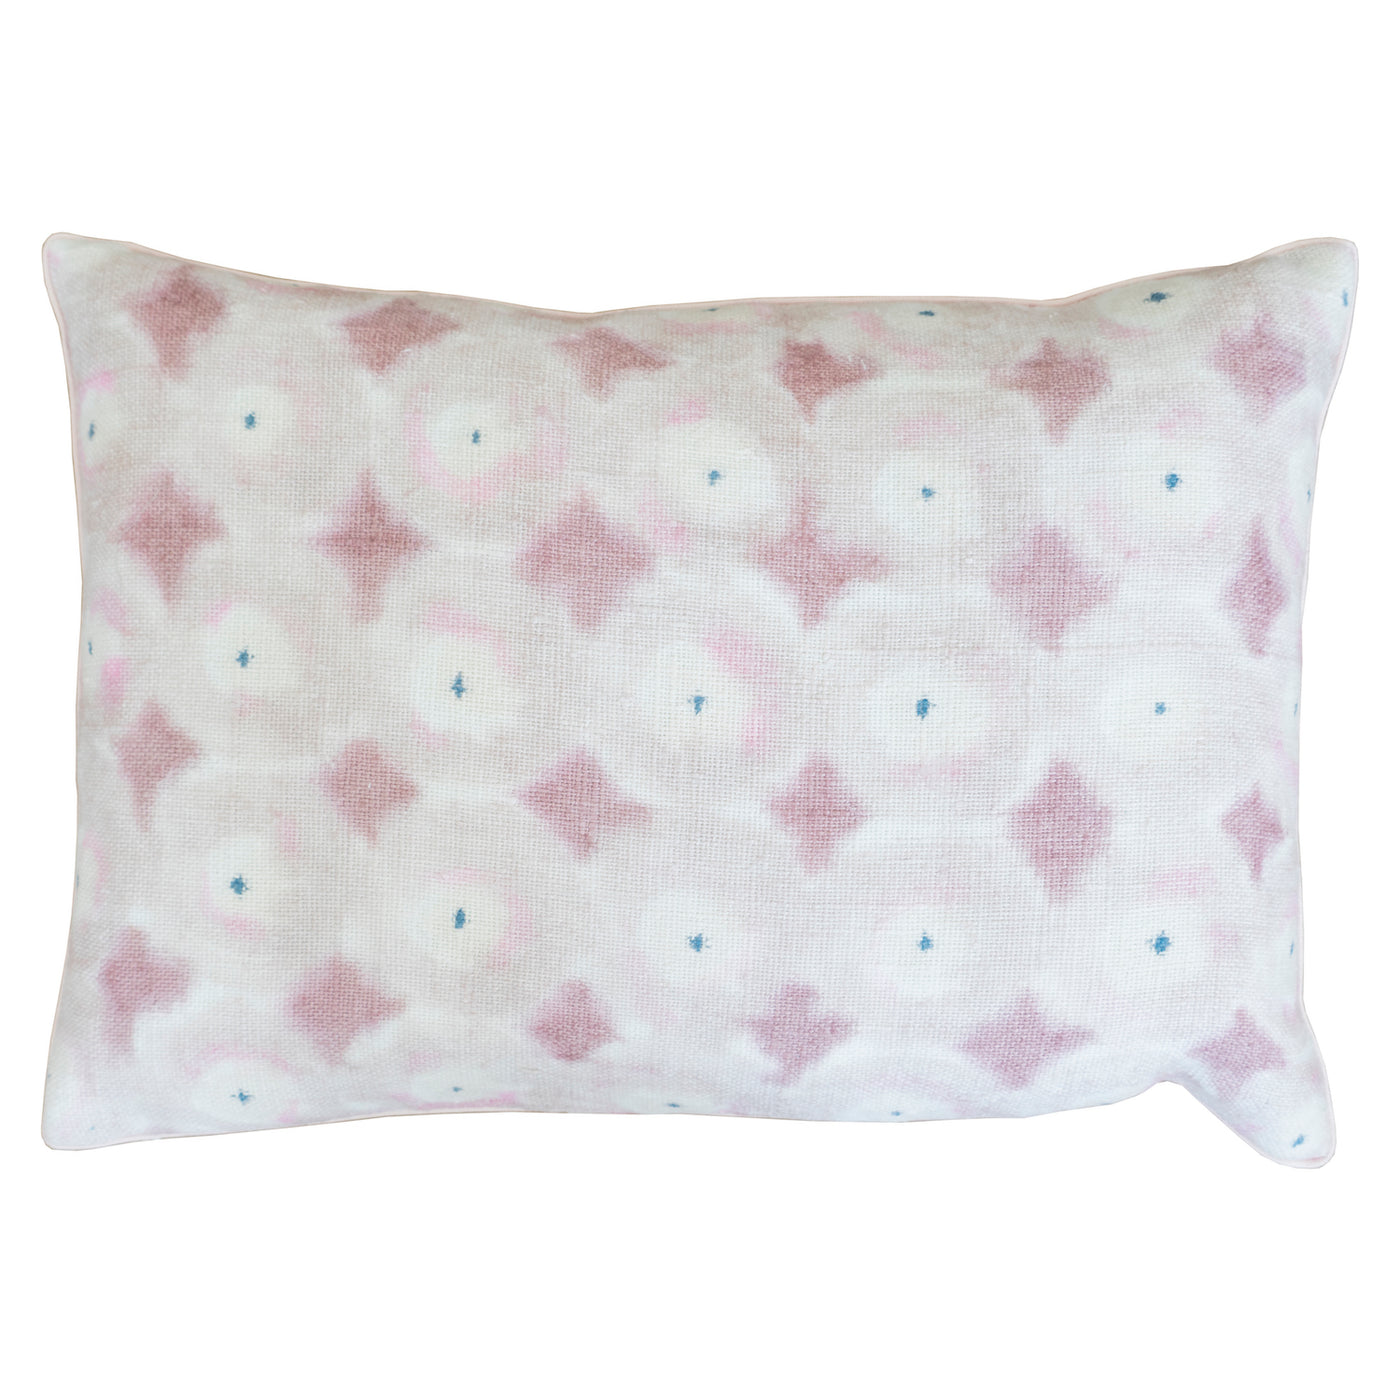 "14"" x 20"" Foulard Hand Painted Pillow - Pale Rose"